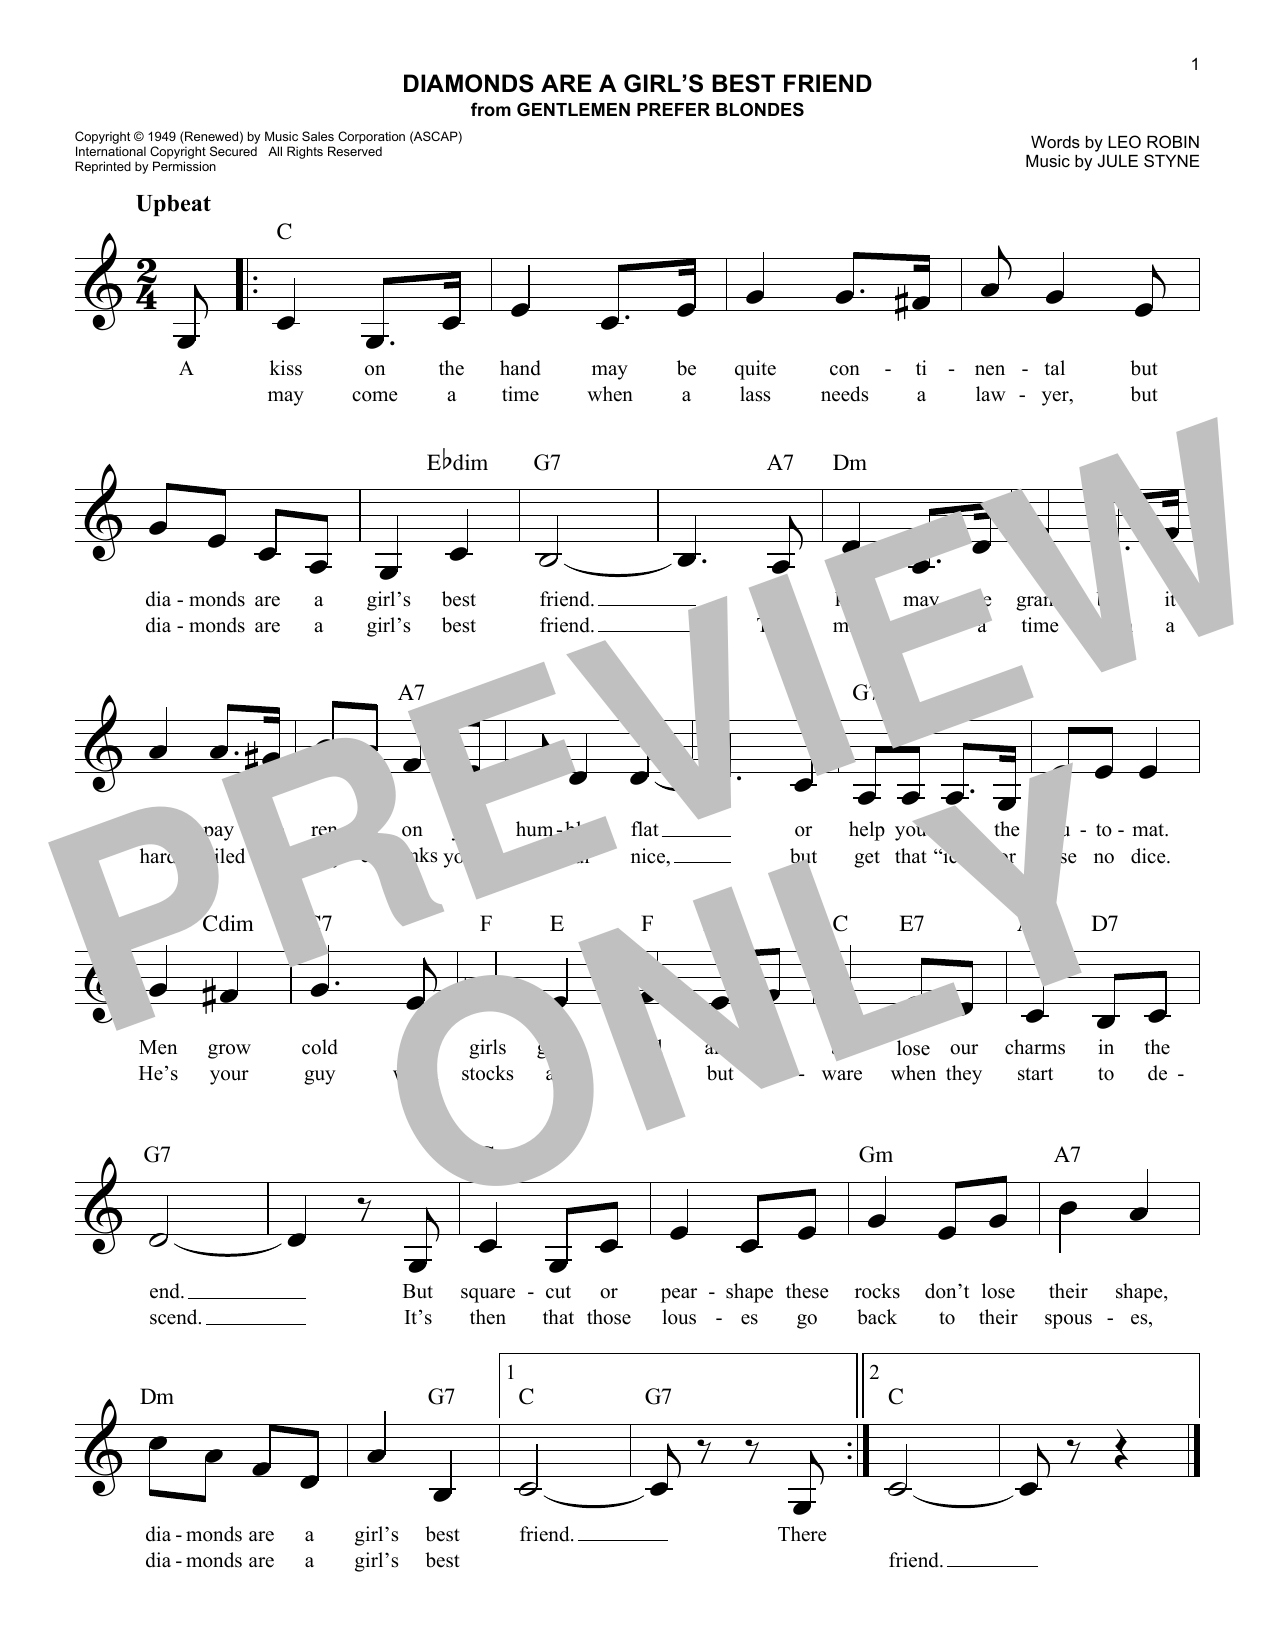 Leo Robin Diamonds Are A Girl's Best Friend sheet music notes and chords. Download Printable PDF.